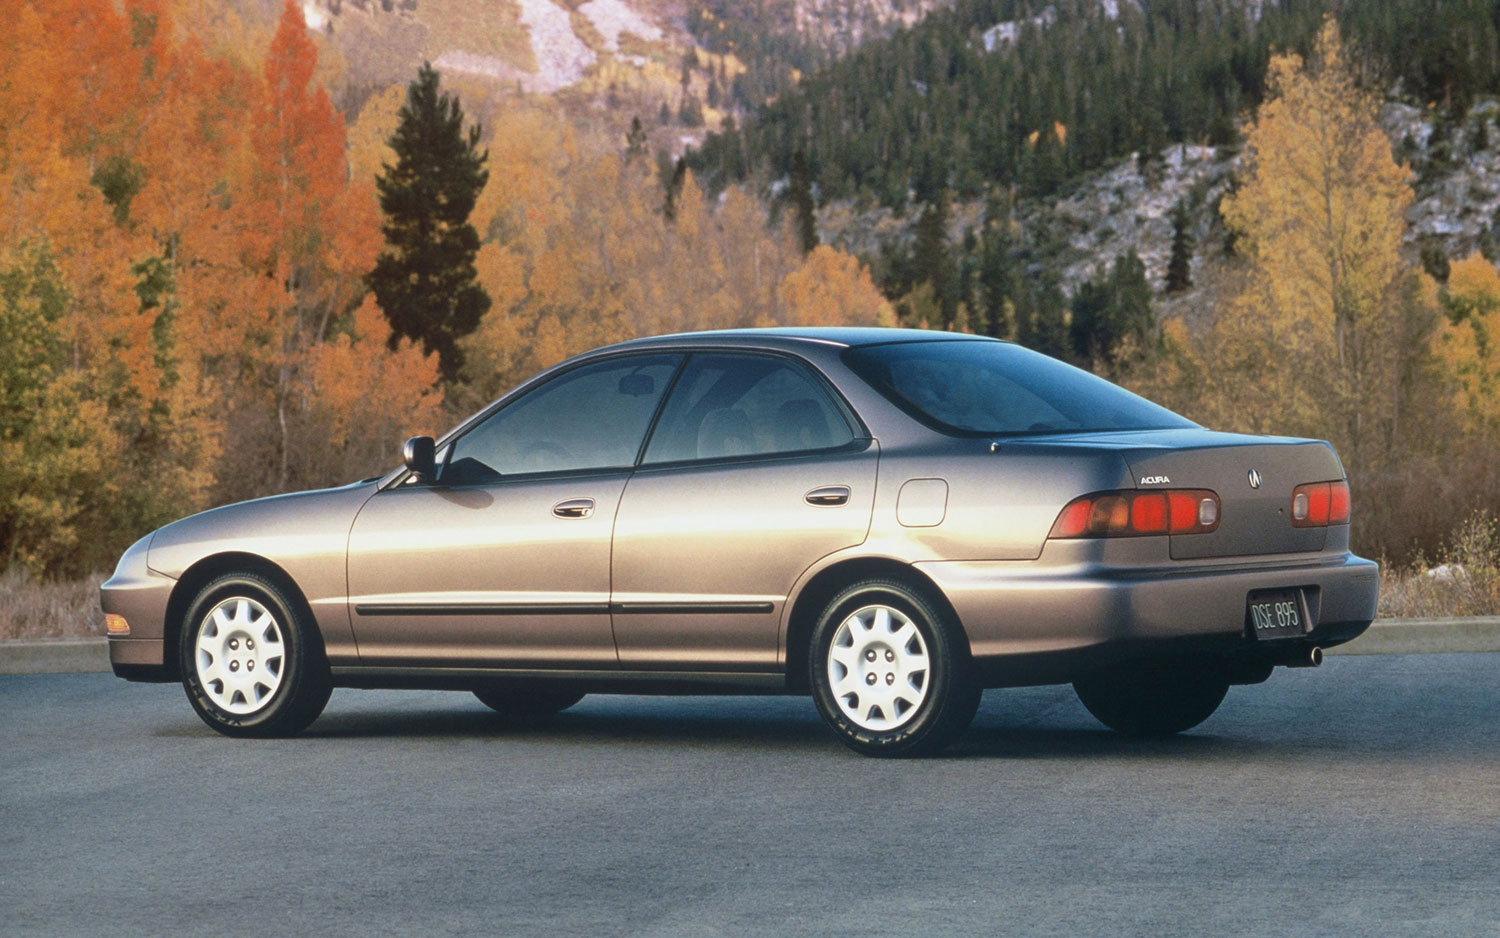 Why A New Acura Integra/RSX Won't Work